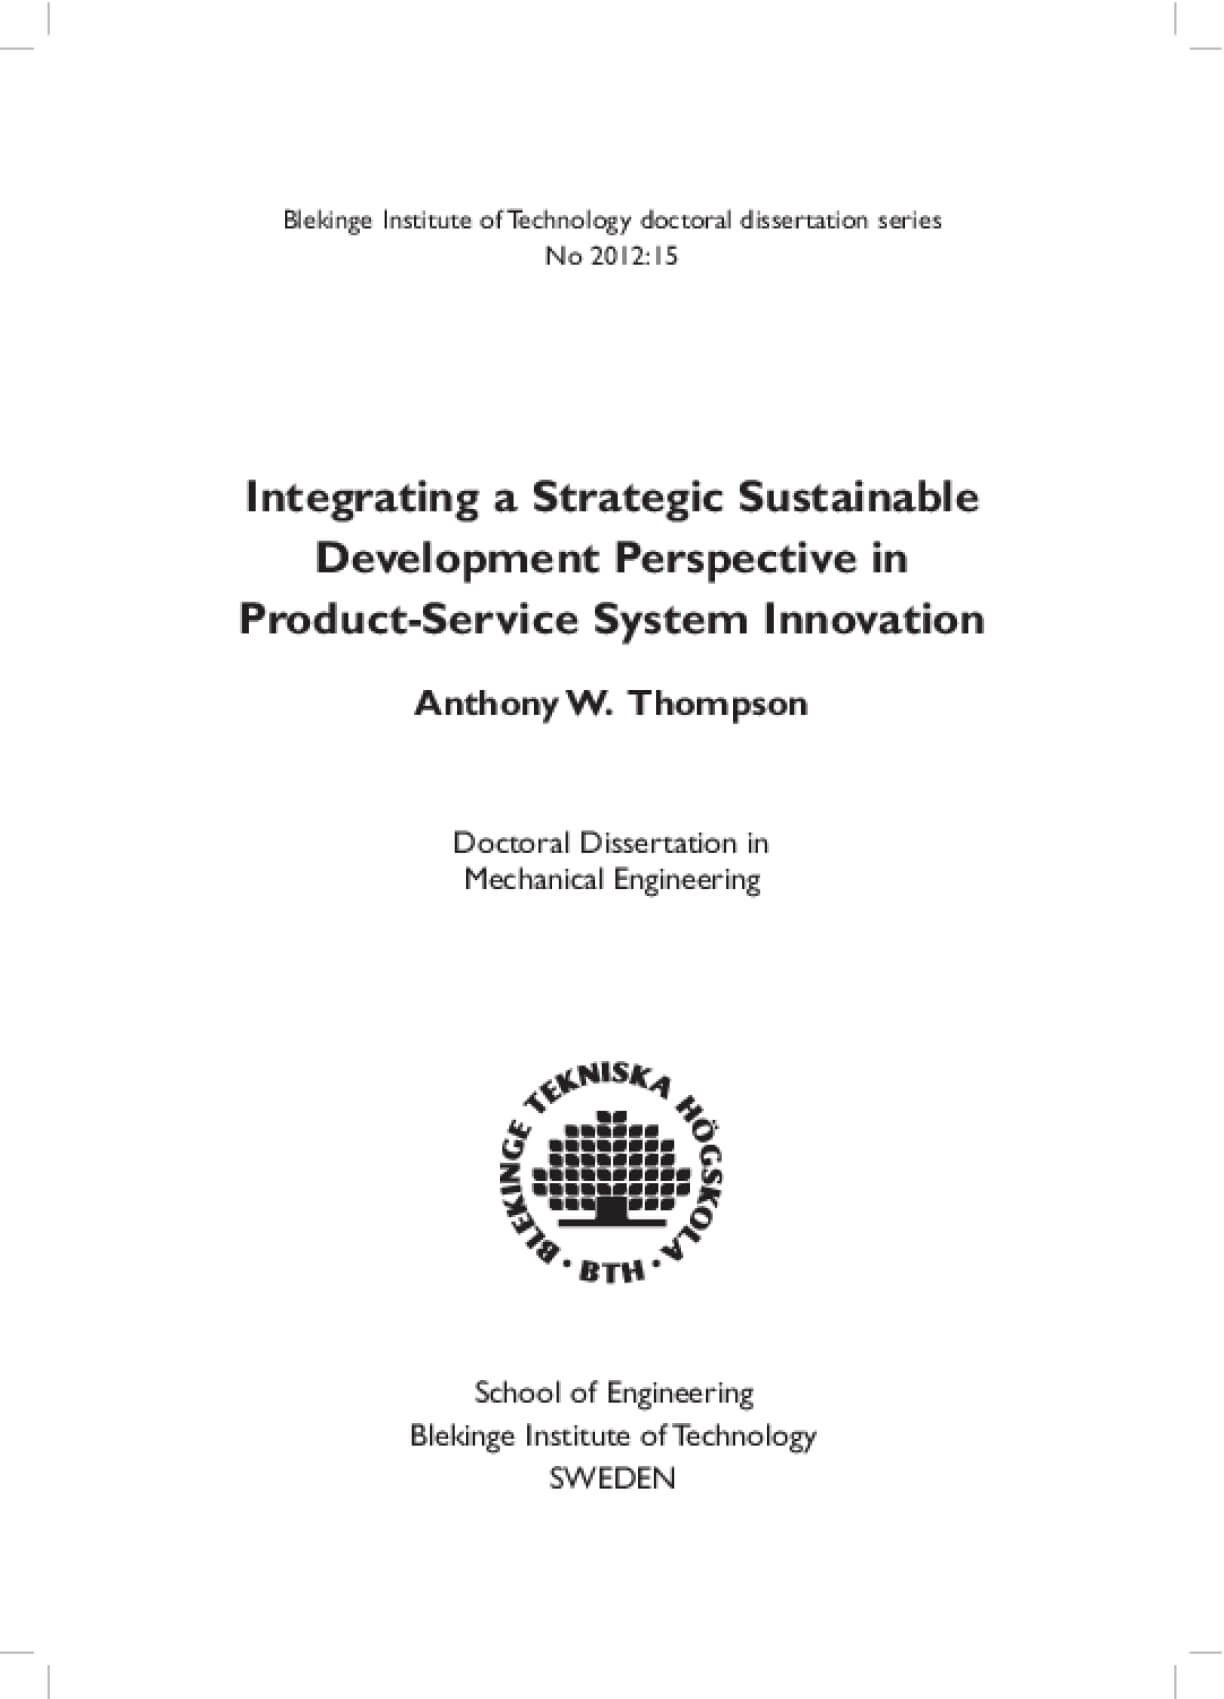 Integrating a Strategic Sustainable Development Perspective in Product-Service System Innovation